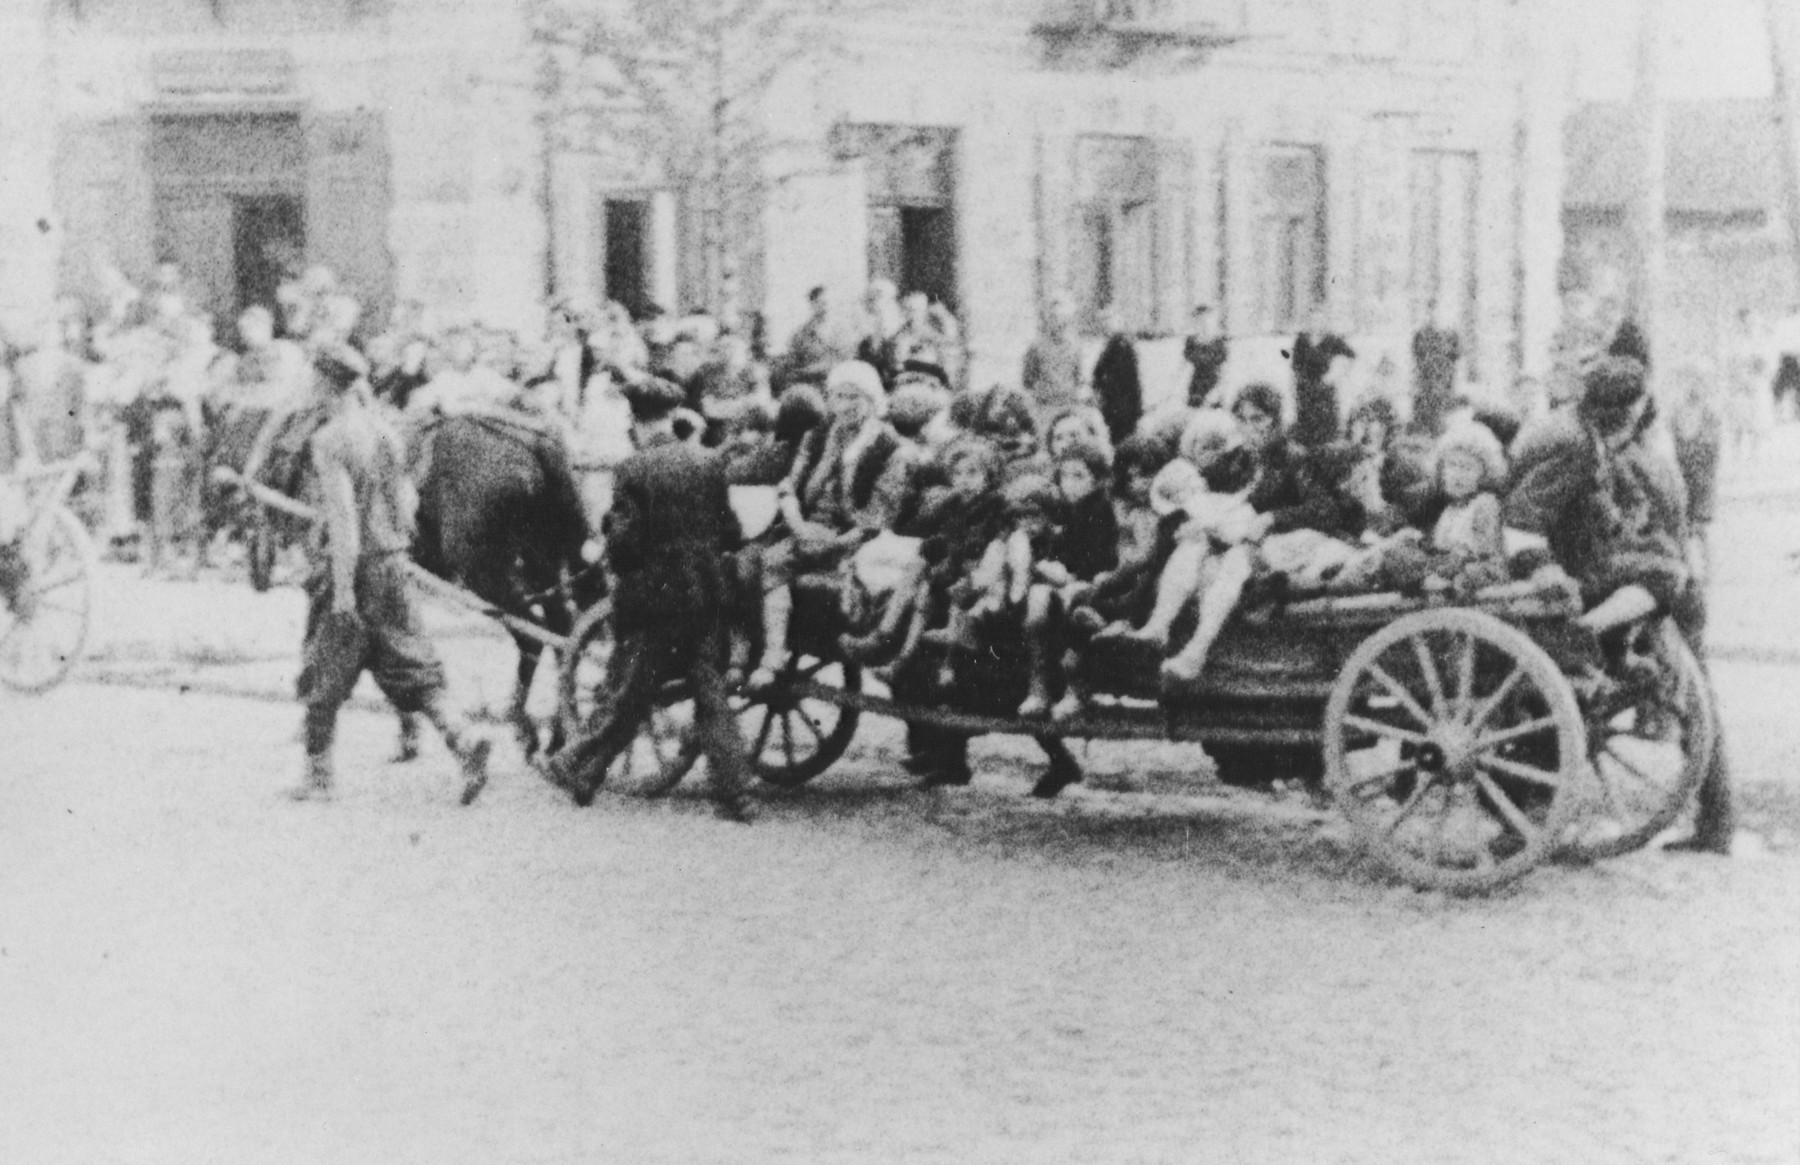 Jewish women and children are transported by horse-drawn wagon during a deportation action in the Siedlce ghetto.